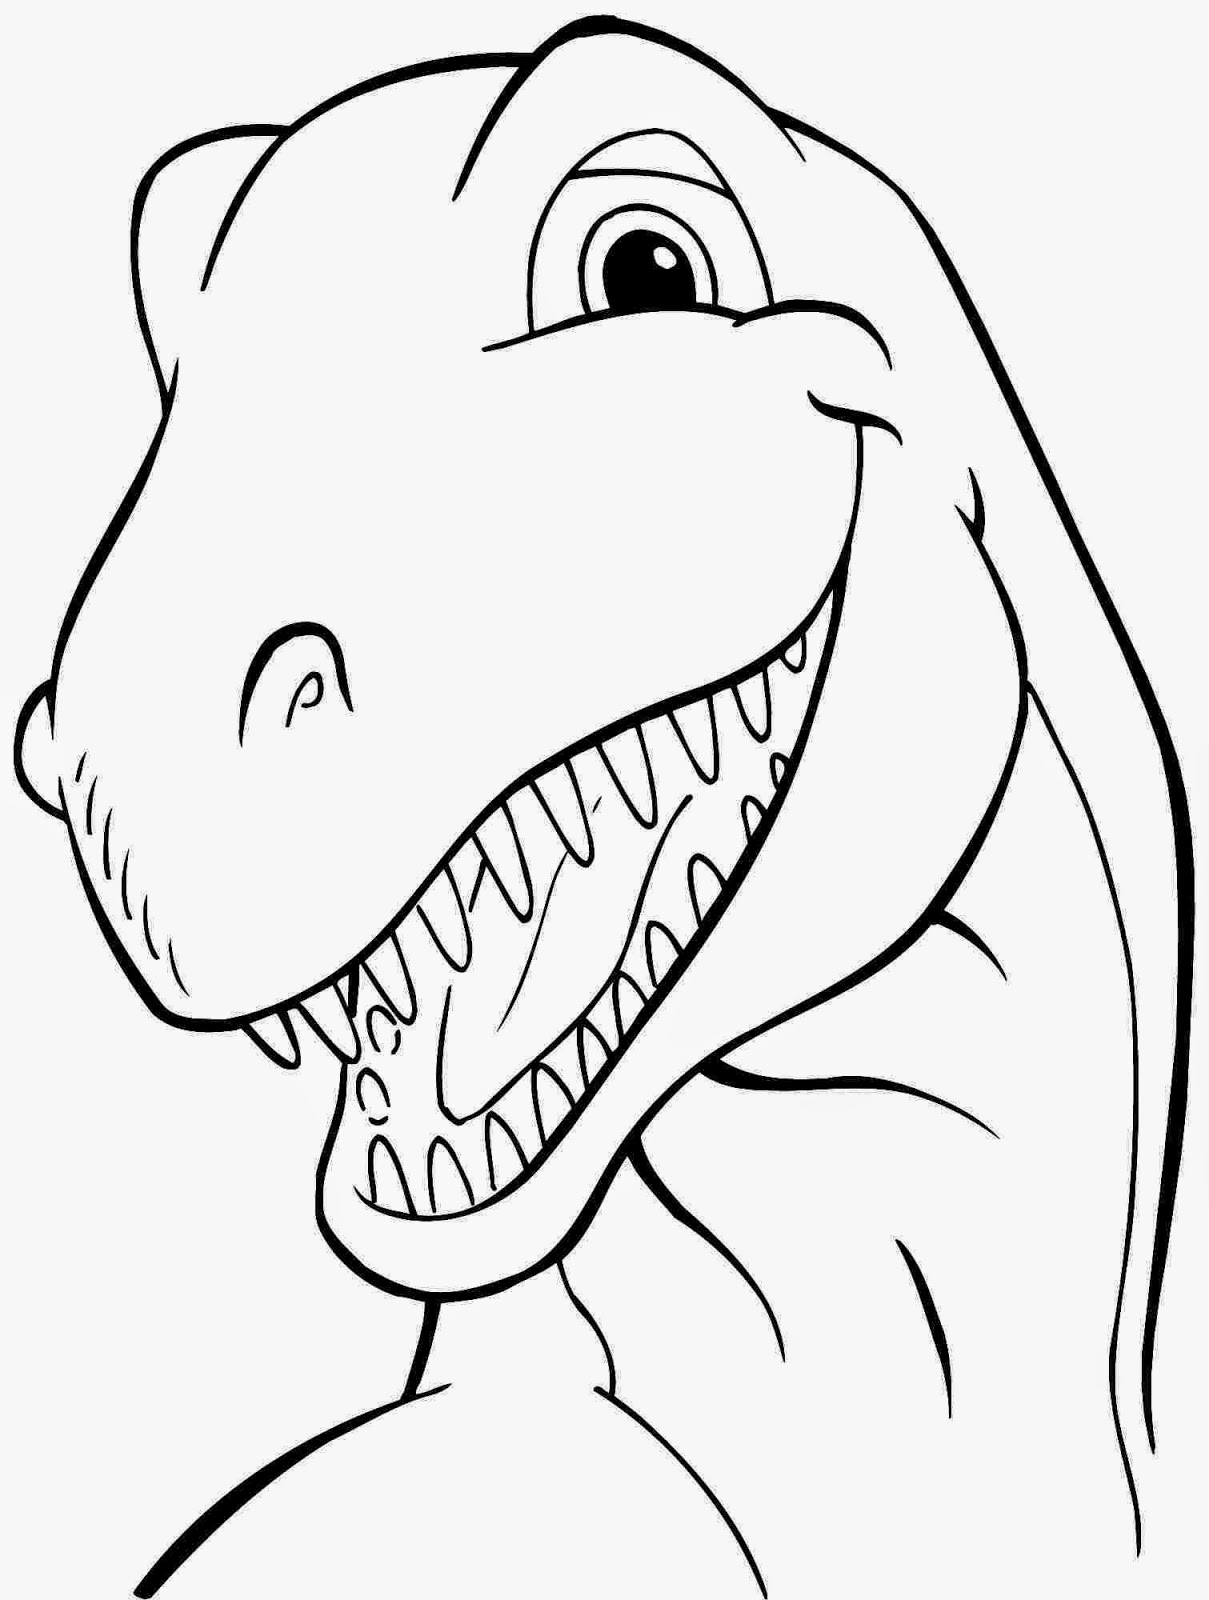 Coloring Pages: Dinosaur Free Printable Coloring Pages